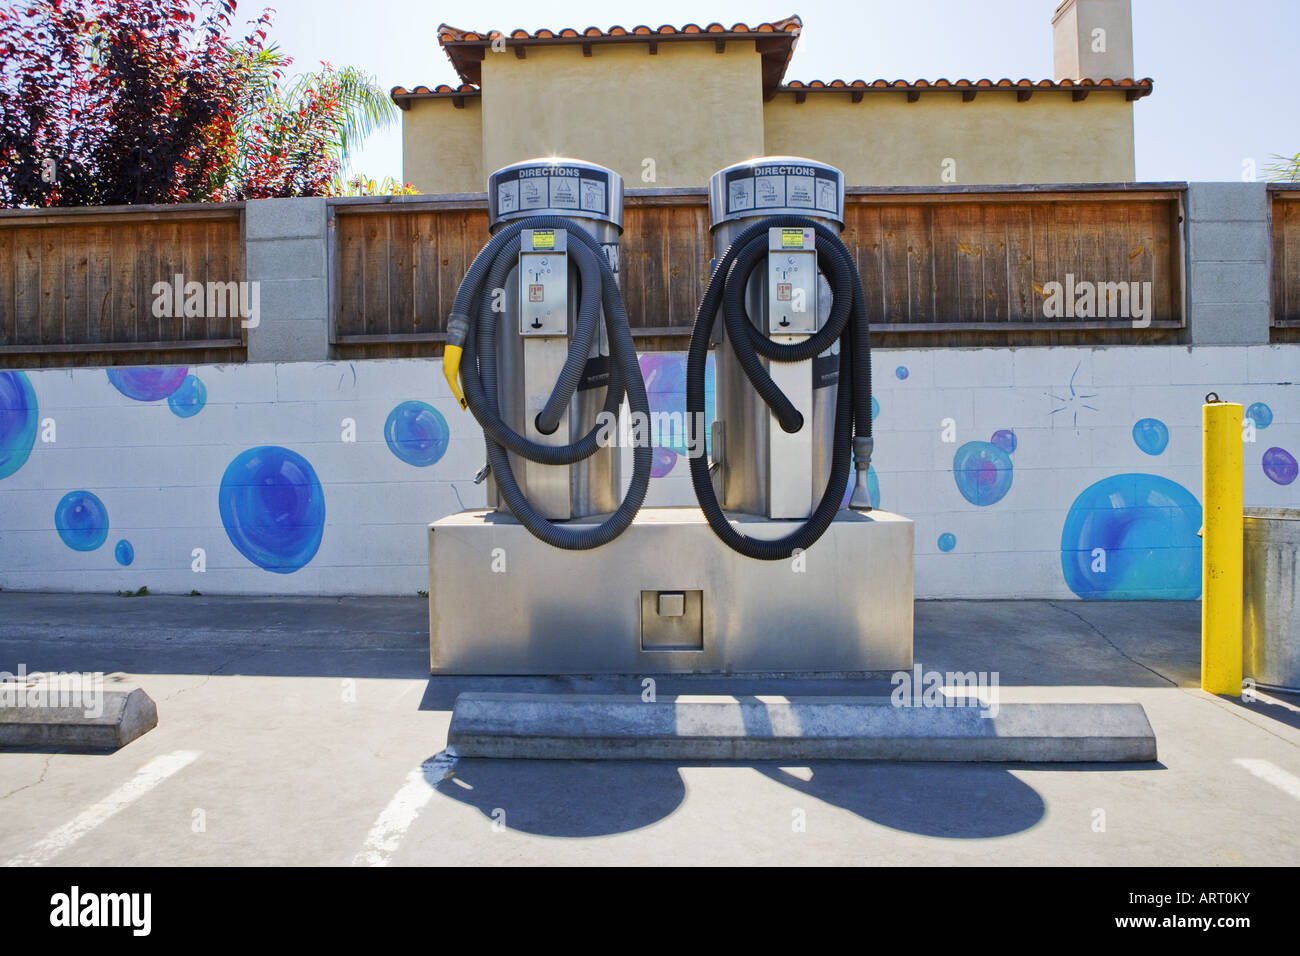 vacuum cleaners at self service car wash stock photo royalty free image 16119278 alamy. Black Bedroom Furniture Sets. Home Design Ideas